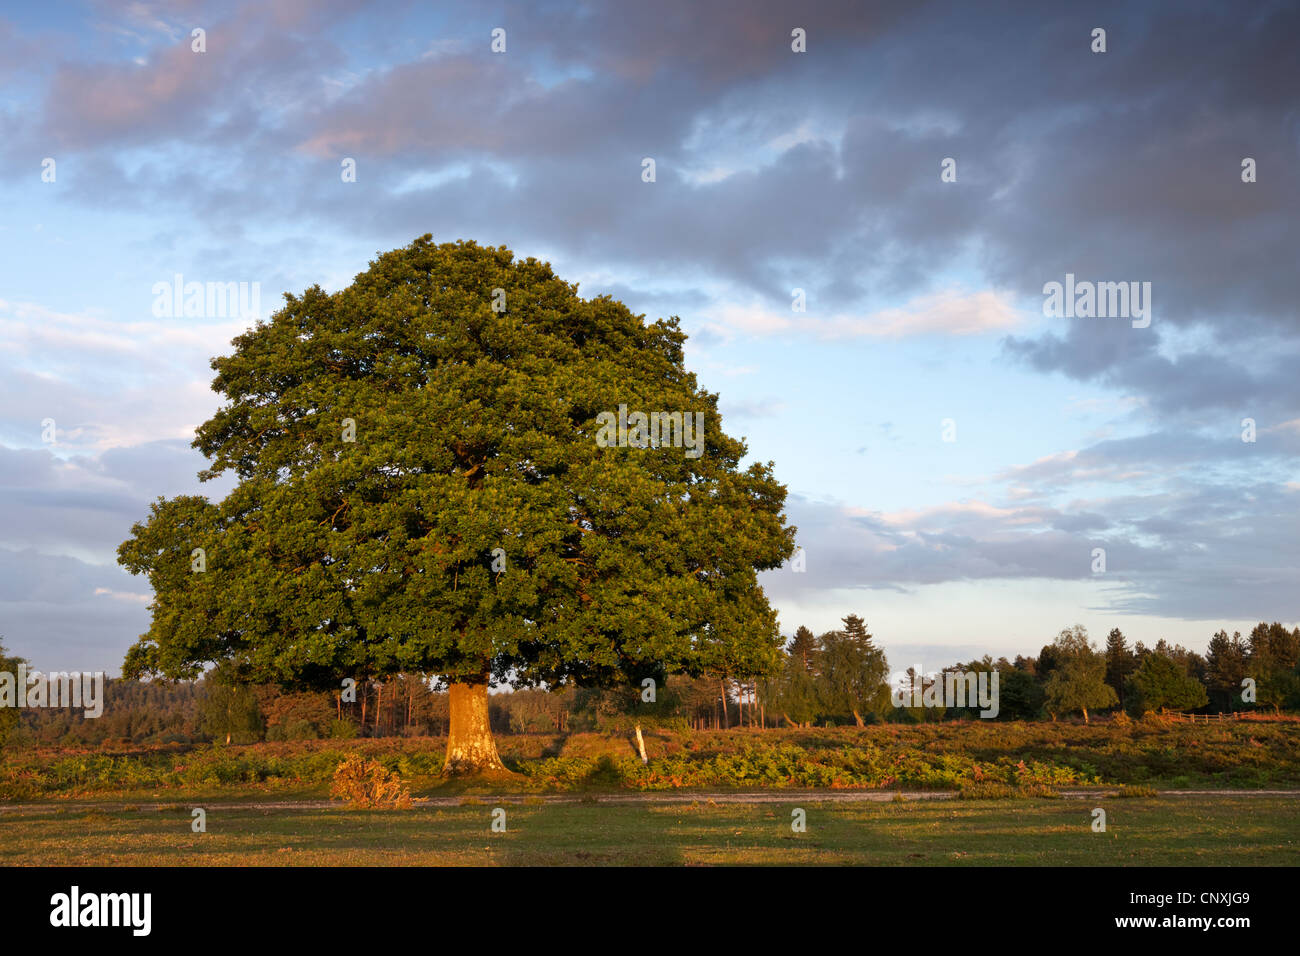 Mature Oak tree on the New Forest heathland, Hampshire, England. Spring (May) 2011. - Stock Image